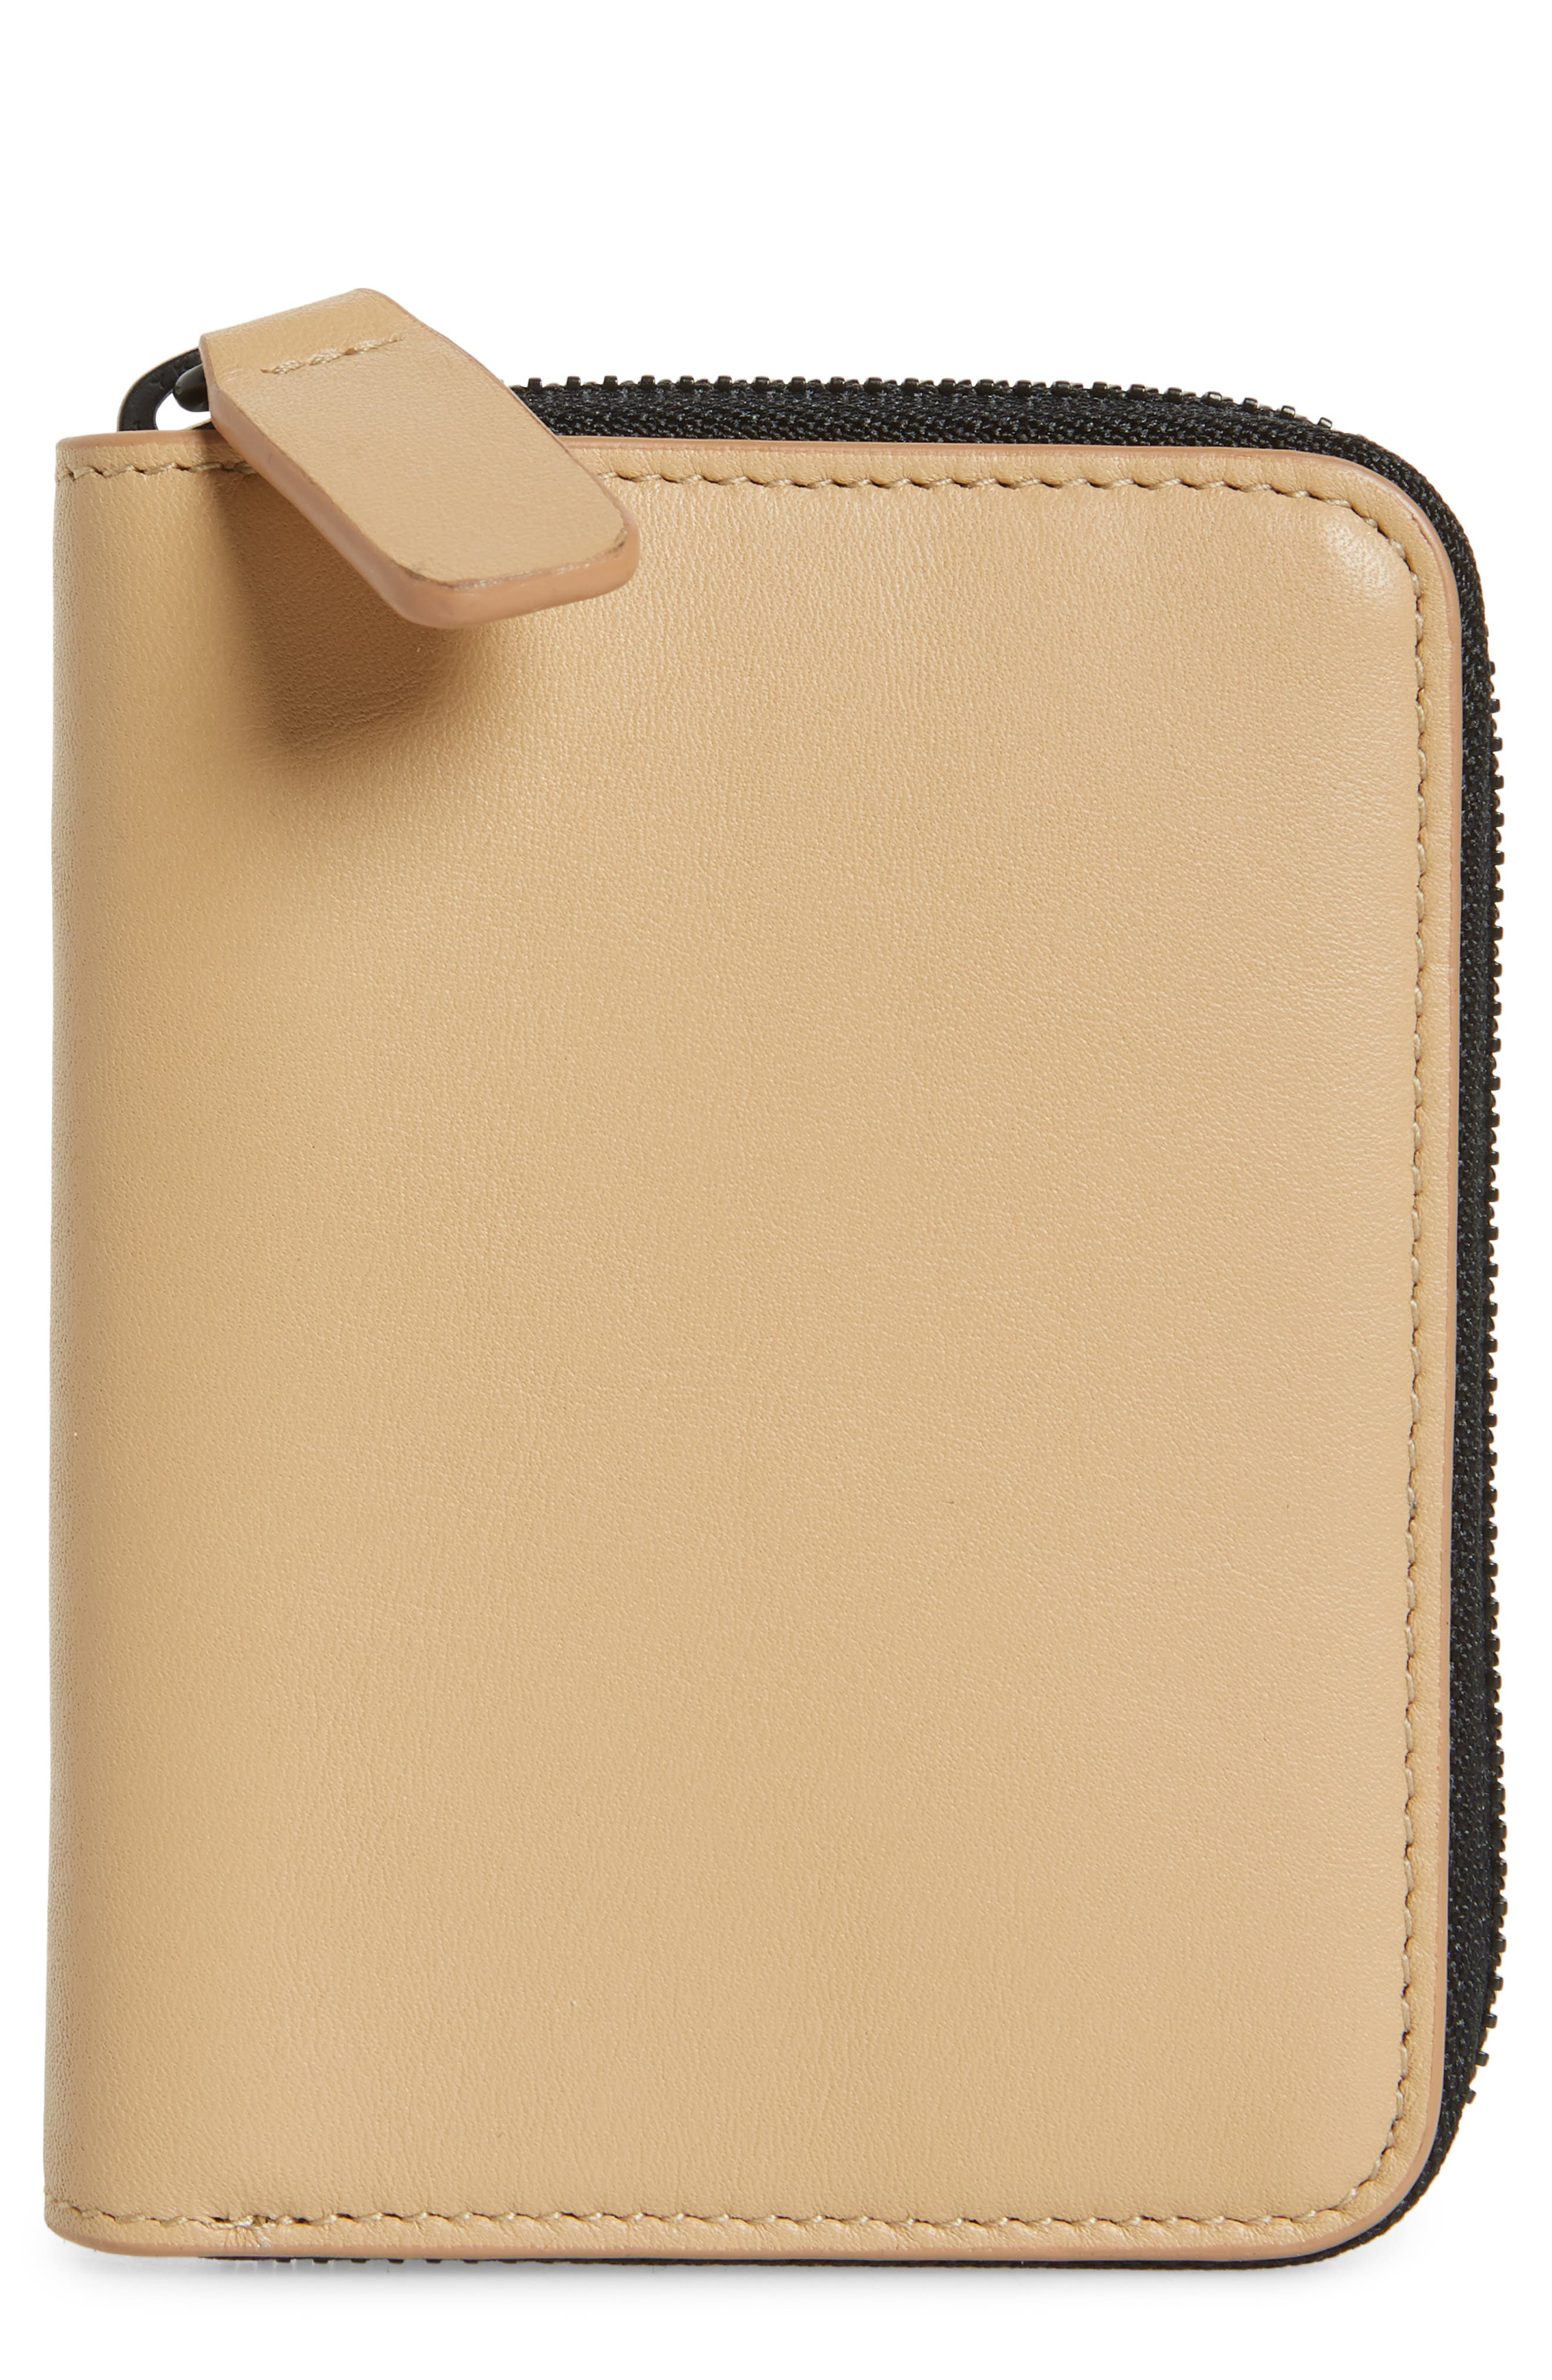 COMMON PROJECTS, Nappa Leather Zip Coin Case, Main thumbnail 1, color, TAN